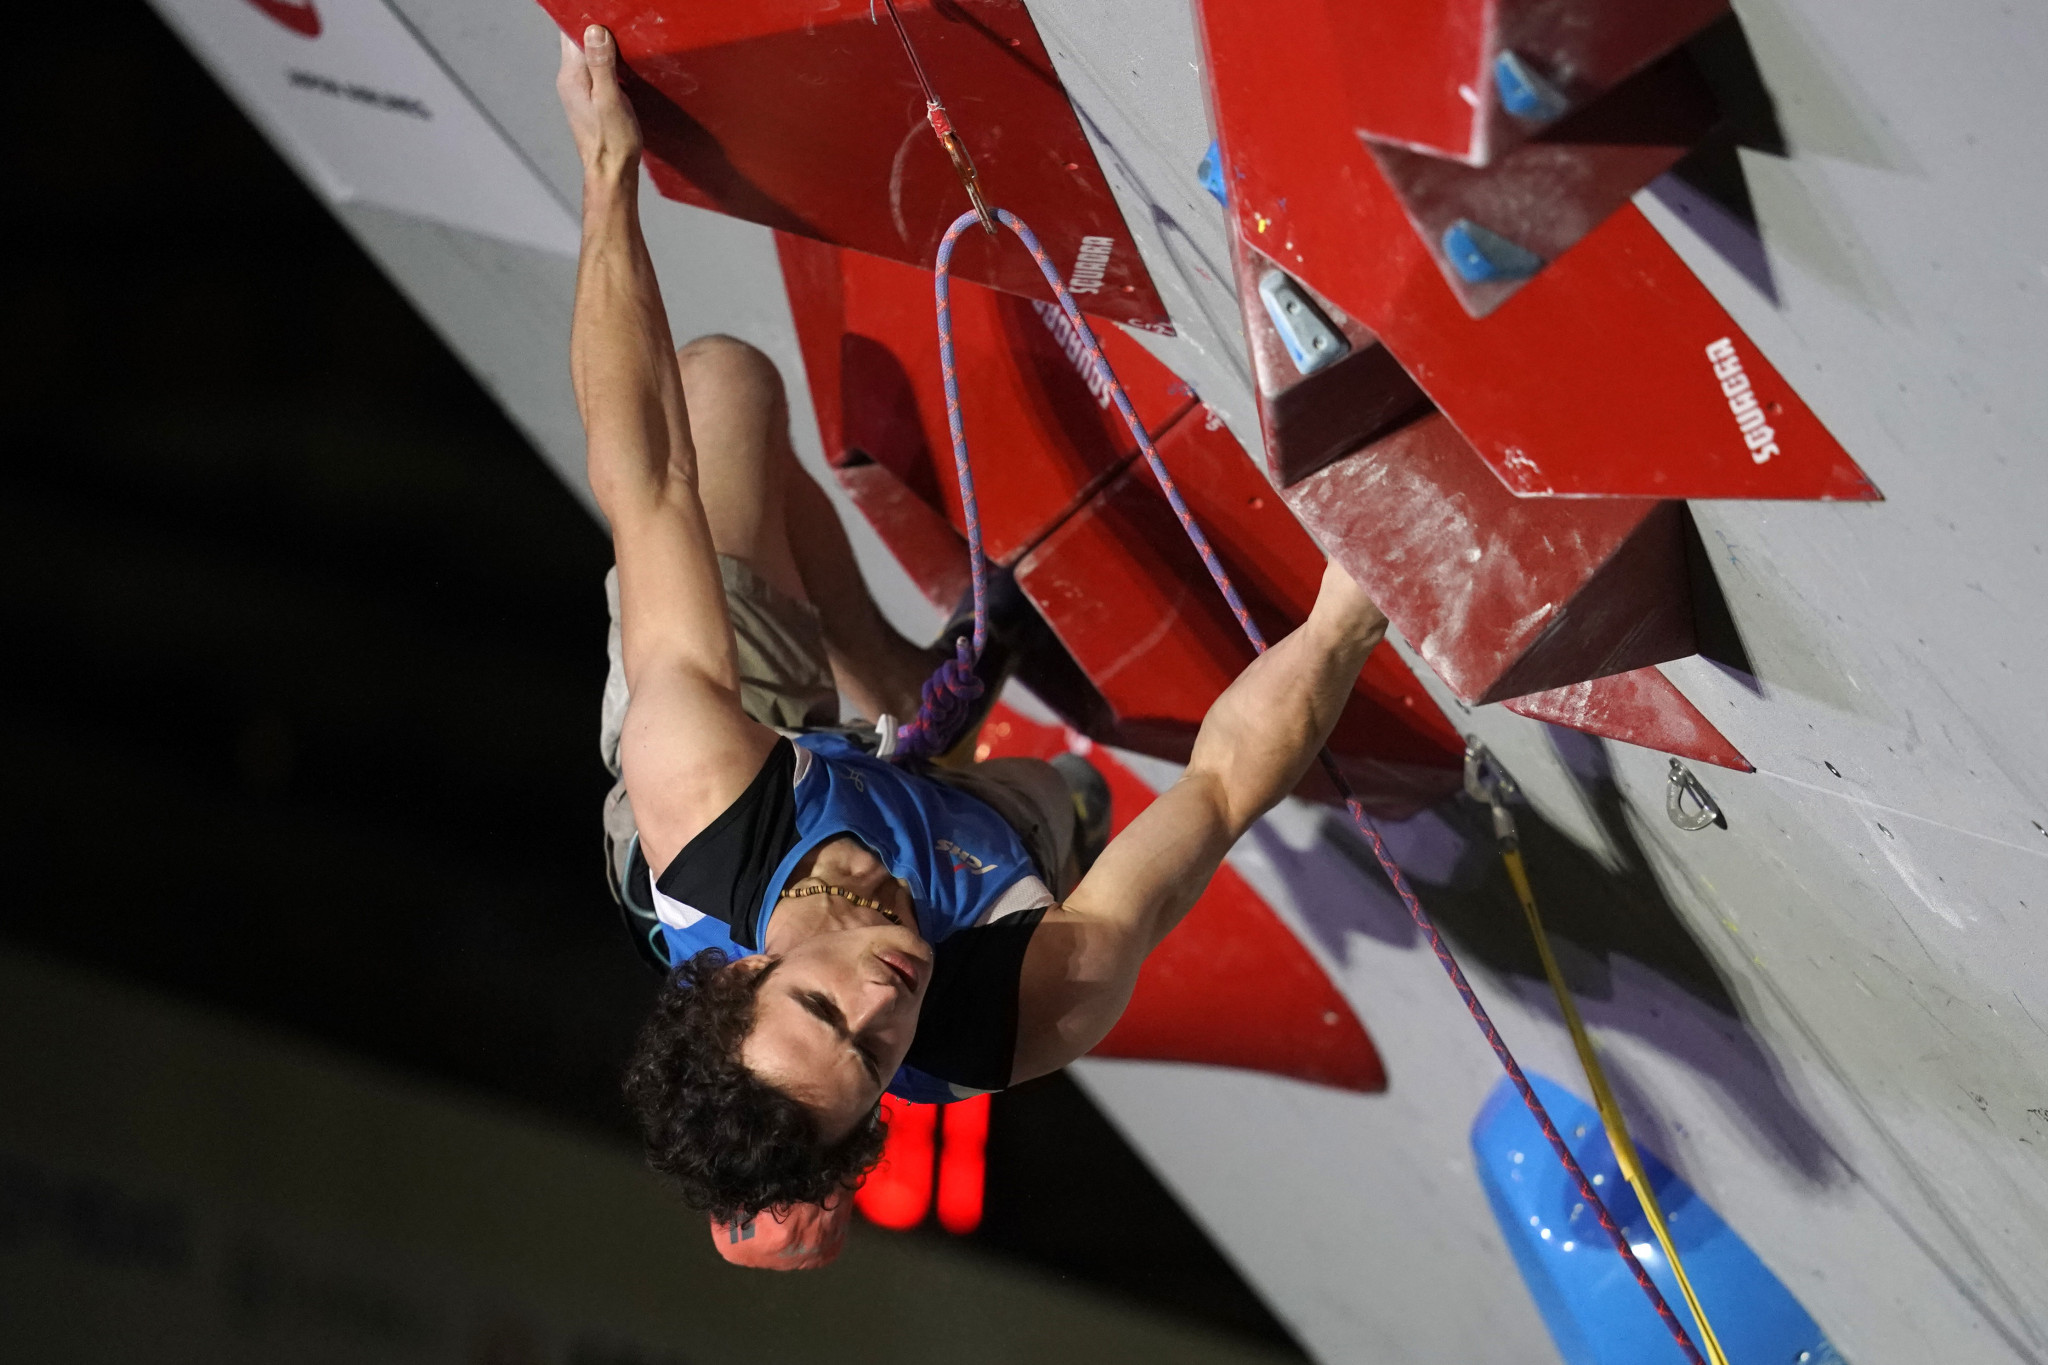 The Czech Republic's Adam Ondra secured the men's honours in the lead competition at the IFSC European Championships in Edinburgh ©Getty Images